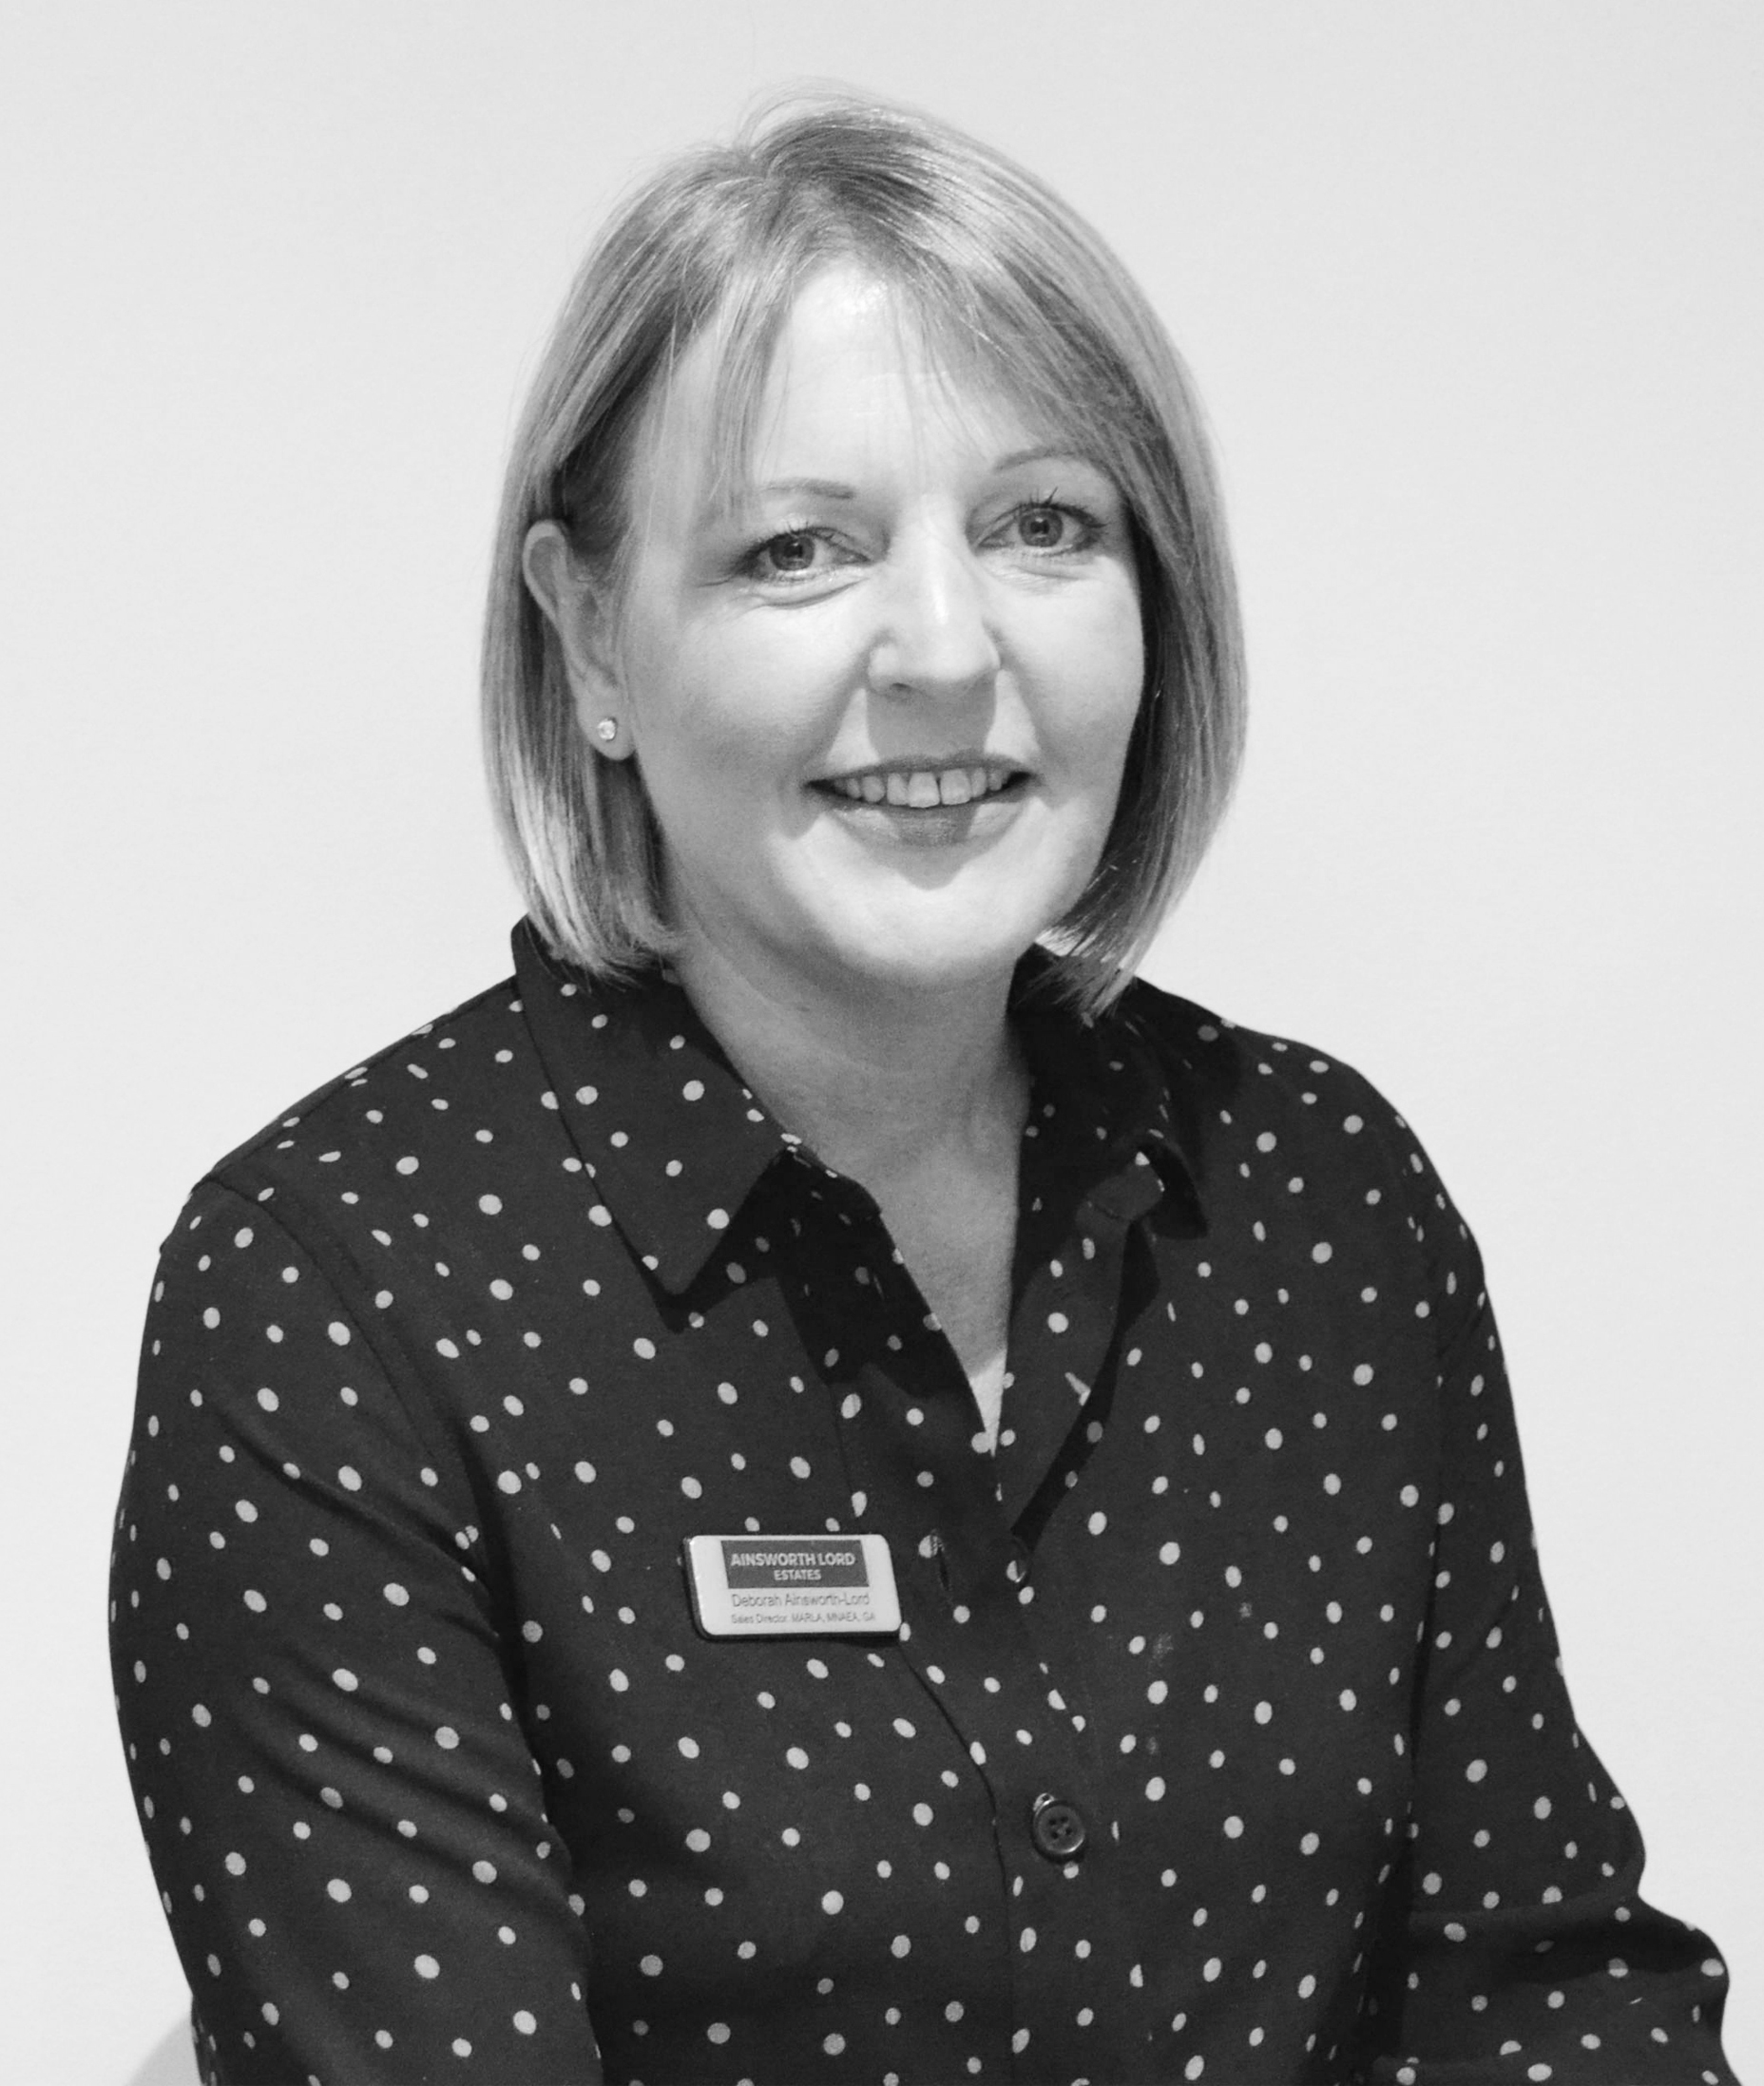 Deborah Ainsworth-Lord, Sales Director